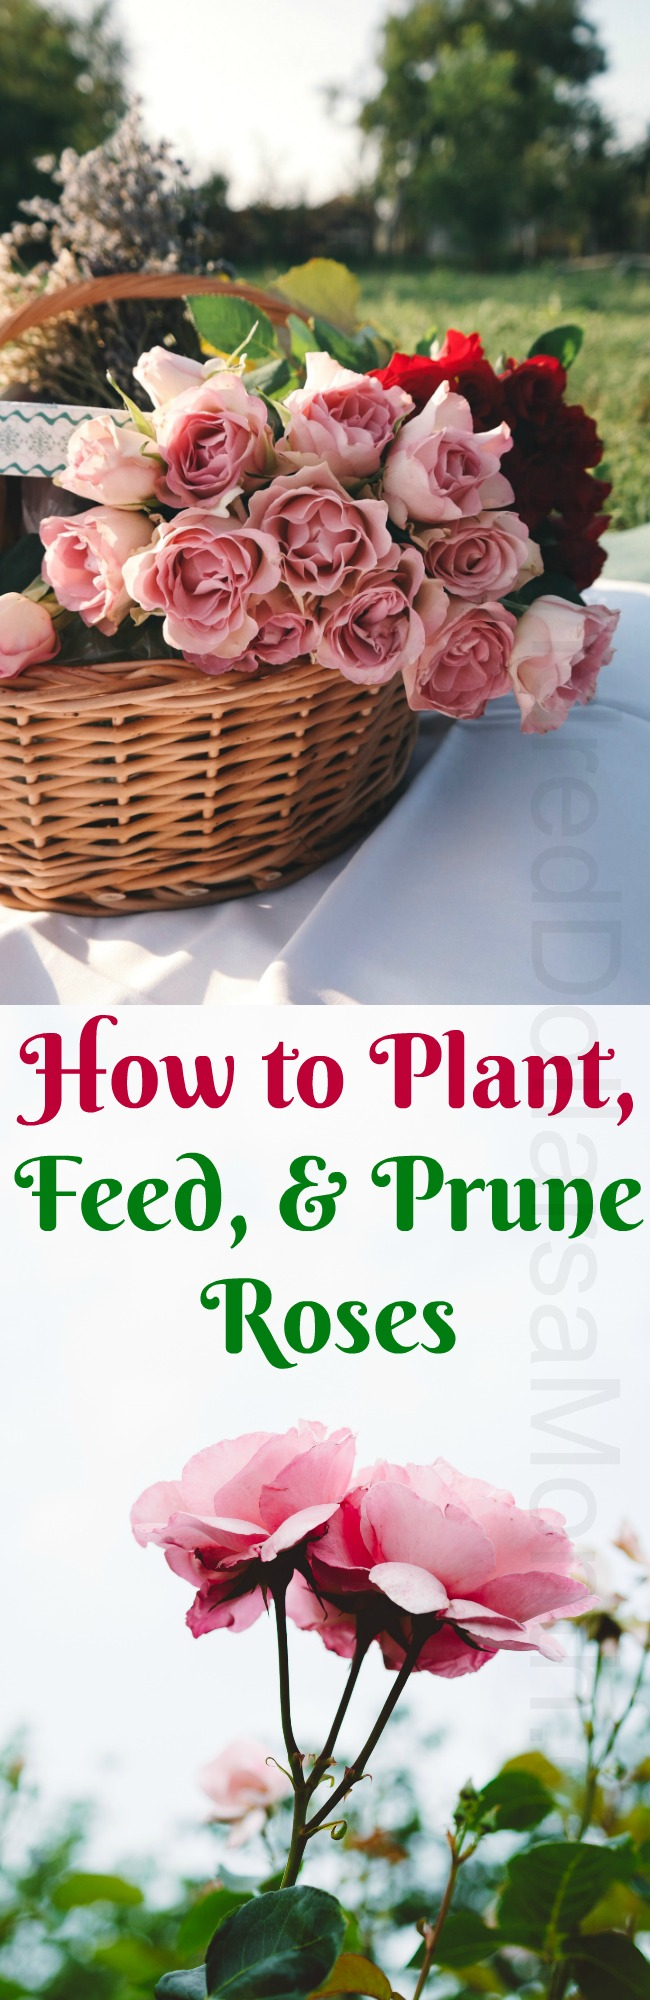 How to Plant, Feed, and Prune Roses